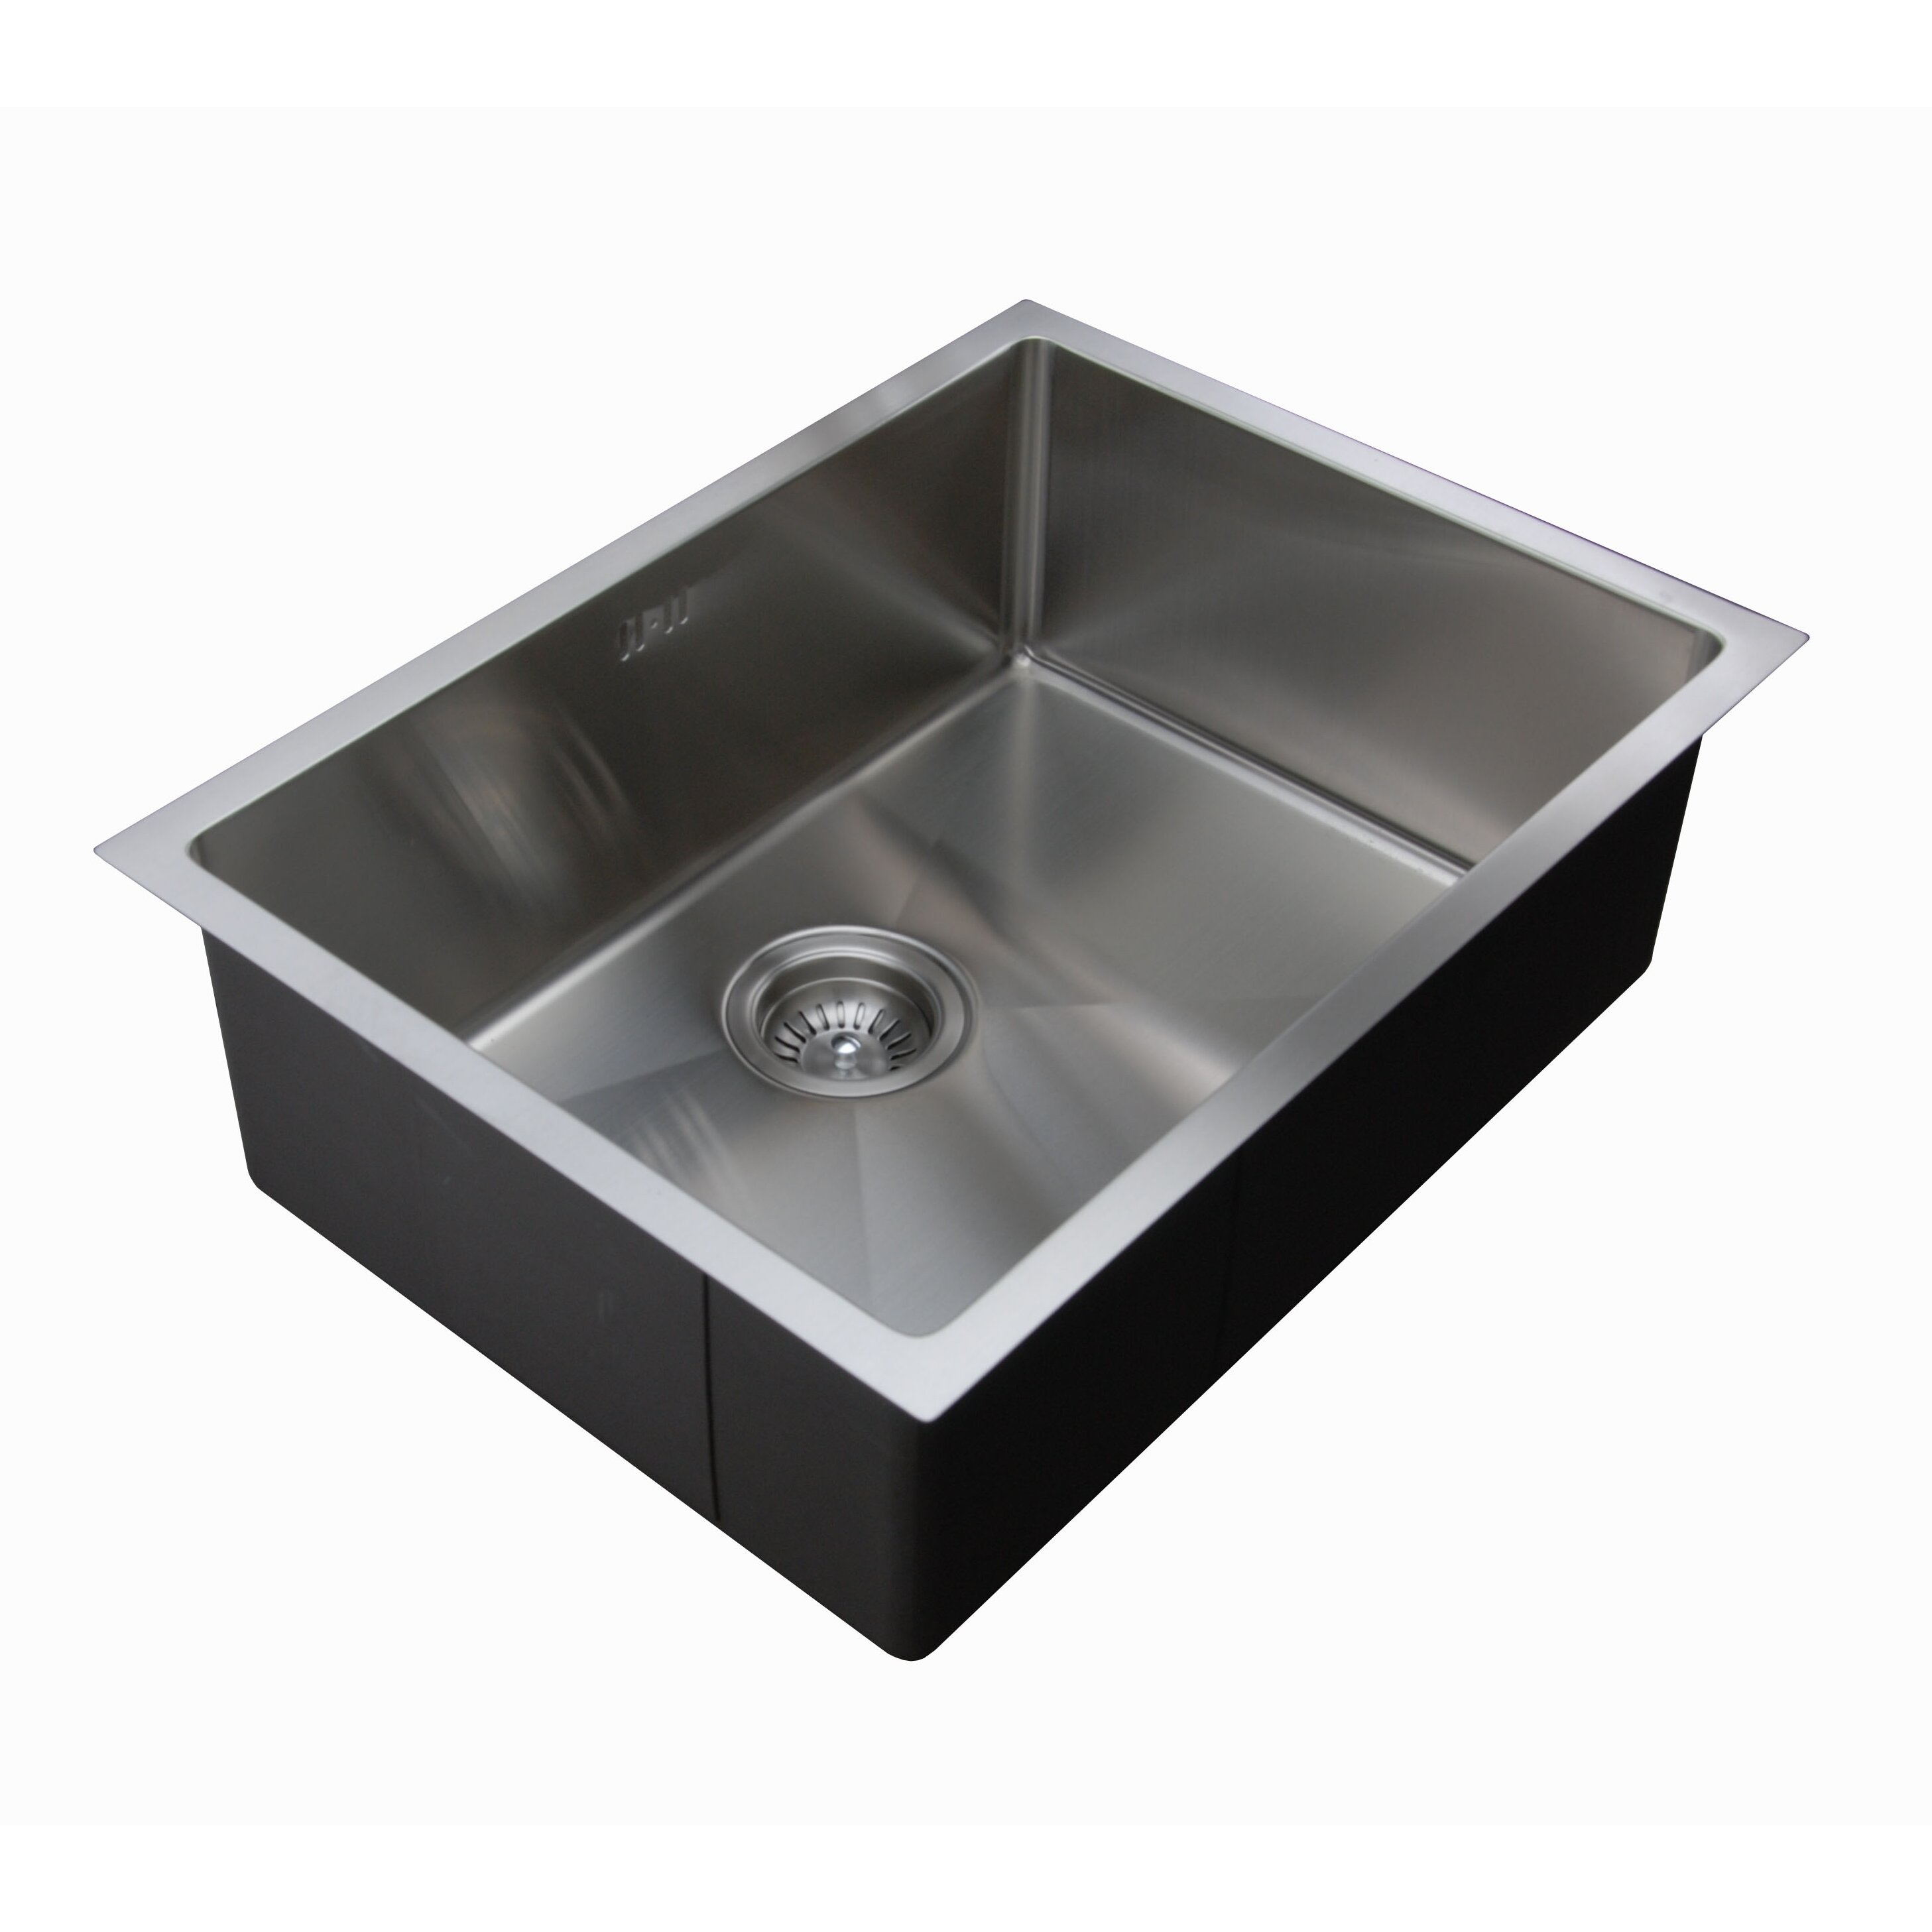 Ukinox 22 X 18 Undermount Single Bowl Stainless Steel Kitchen Sink Wayfair